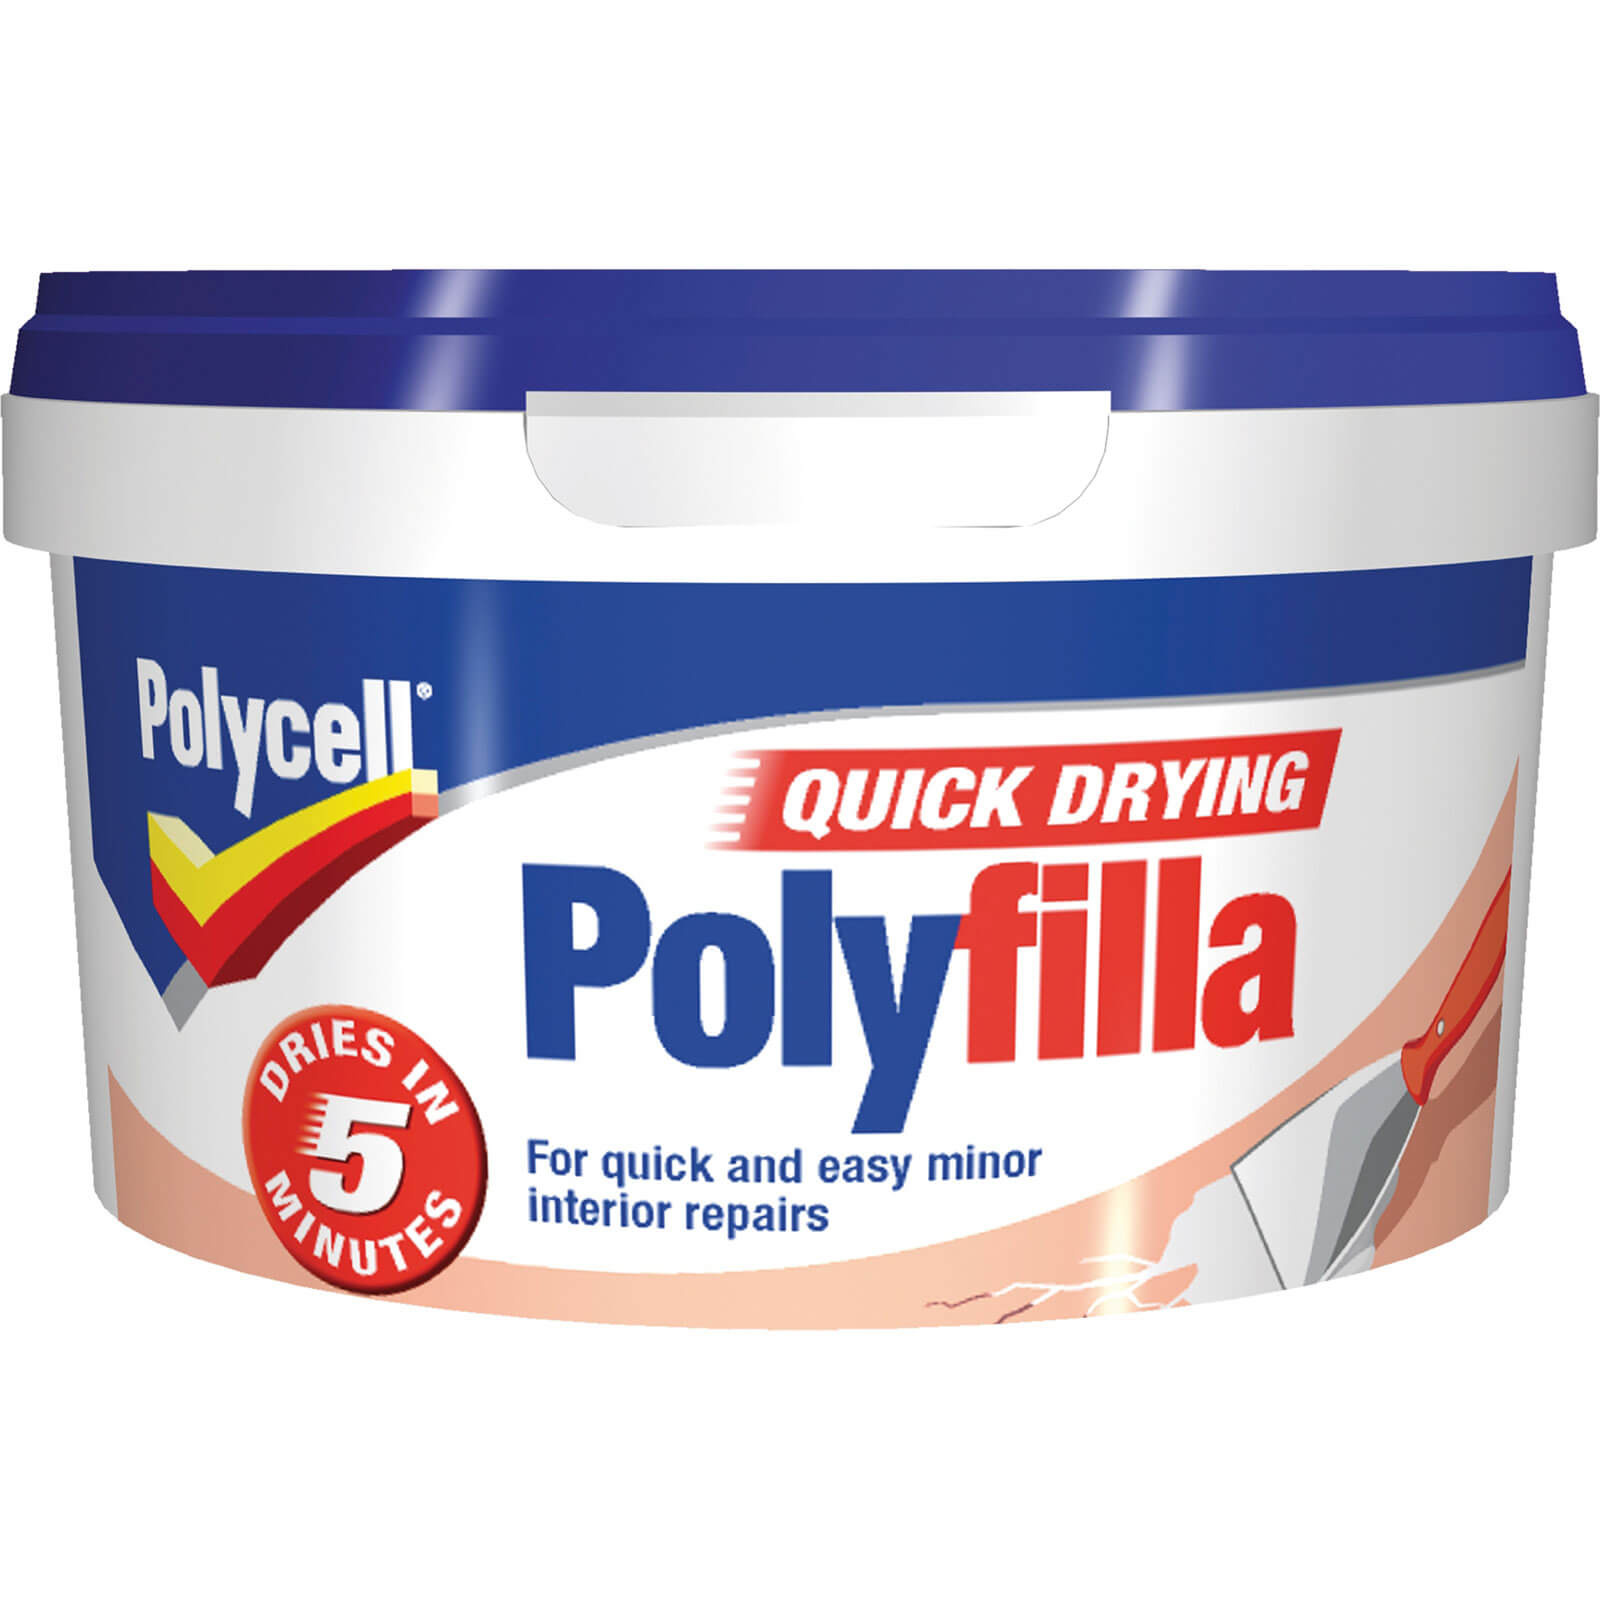 Polycell Multi Purpose Quick Drying Polyfilla Tube 500g